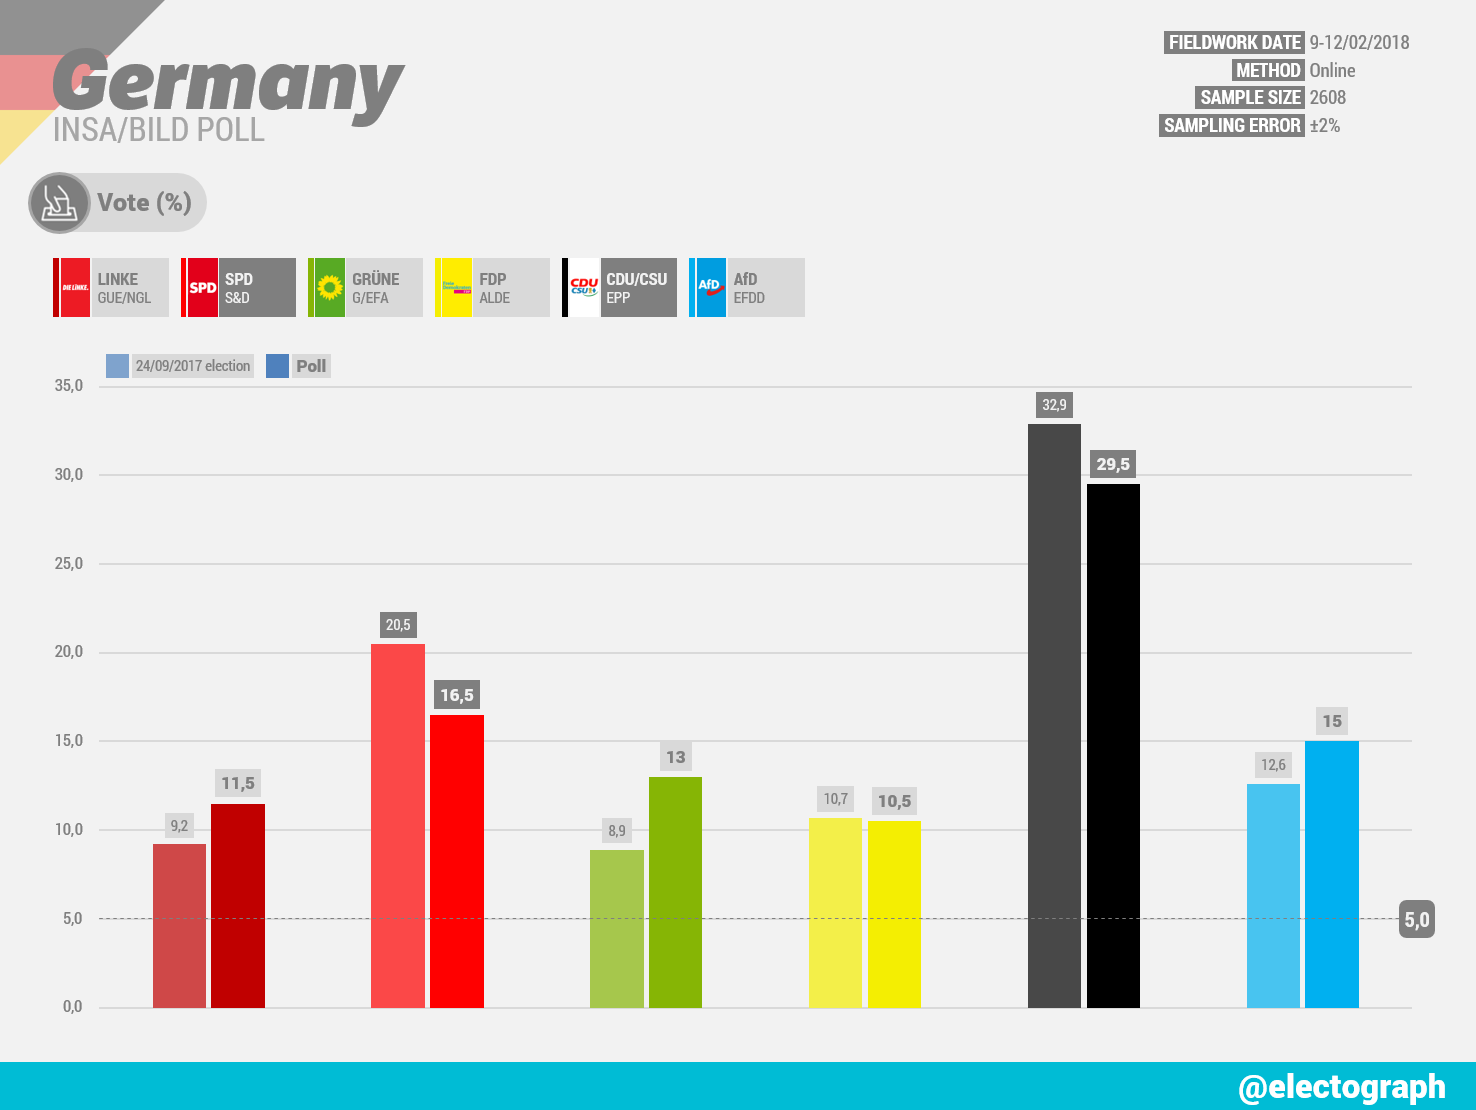 GERMANY INSA poll chart for Bild, 12 February 2018